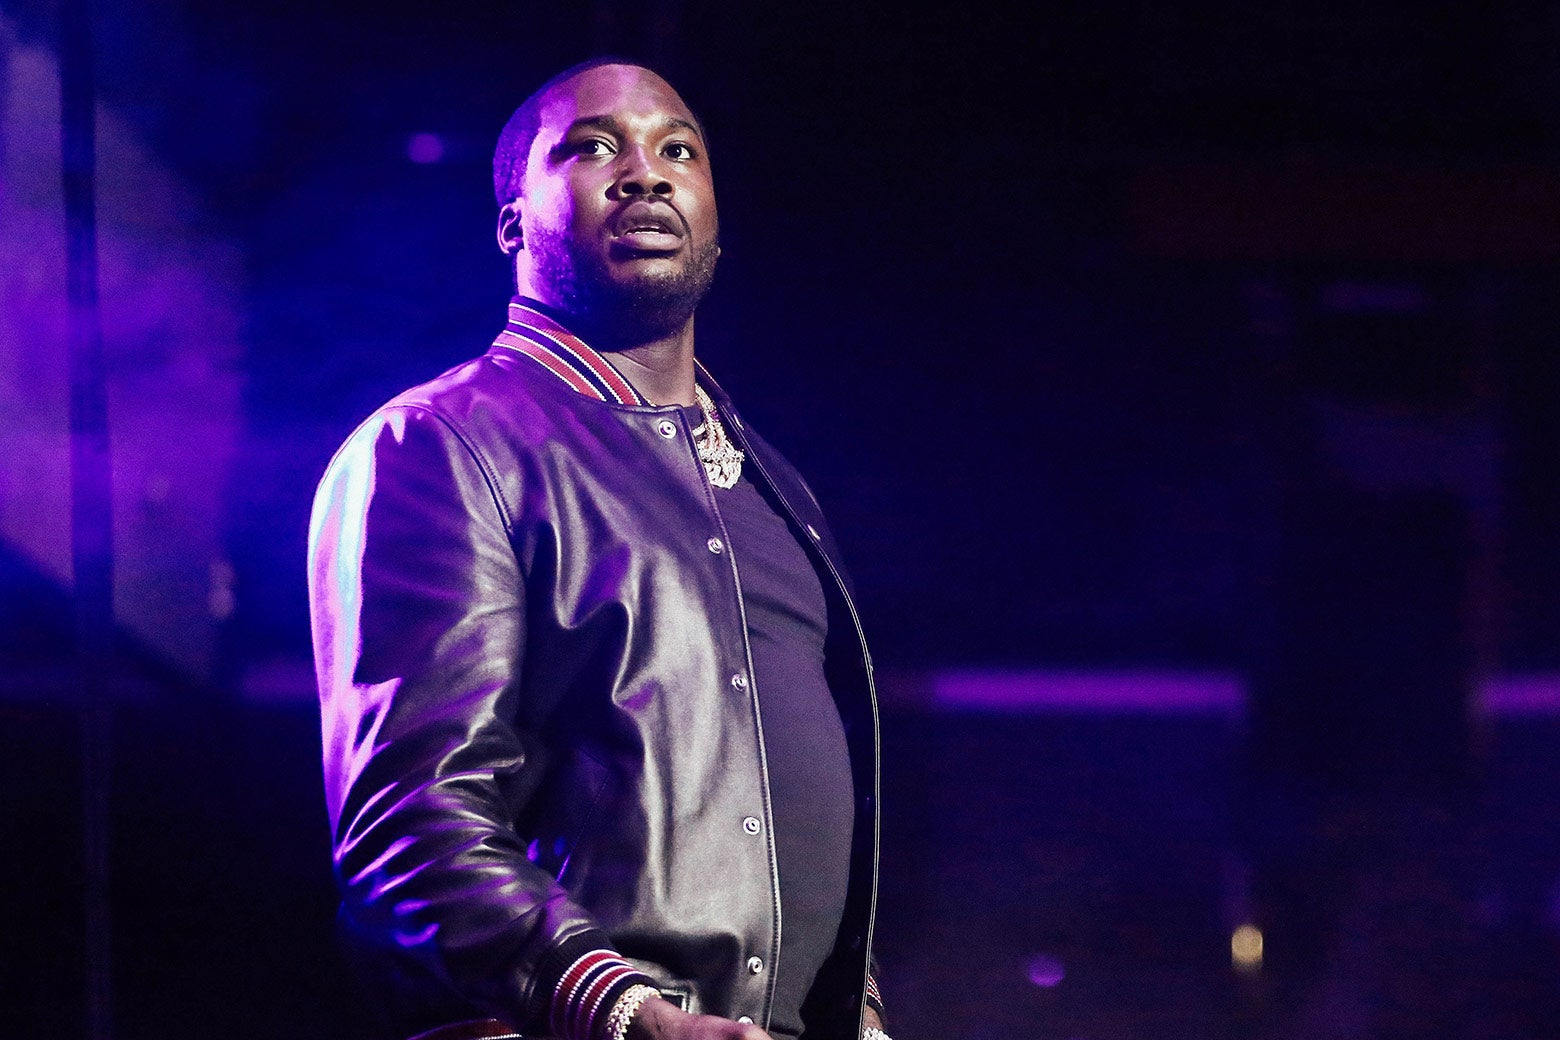 Meek Mill performs onstage during the 2018 BET Experience on June 23 in Los Angeles.